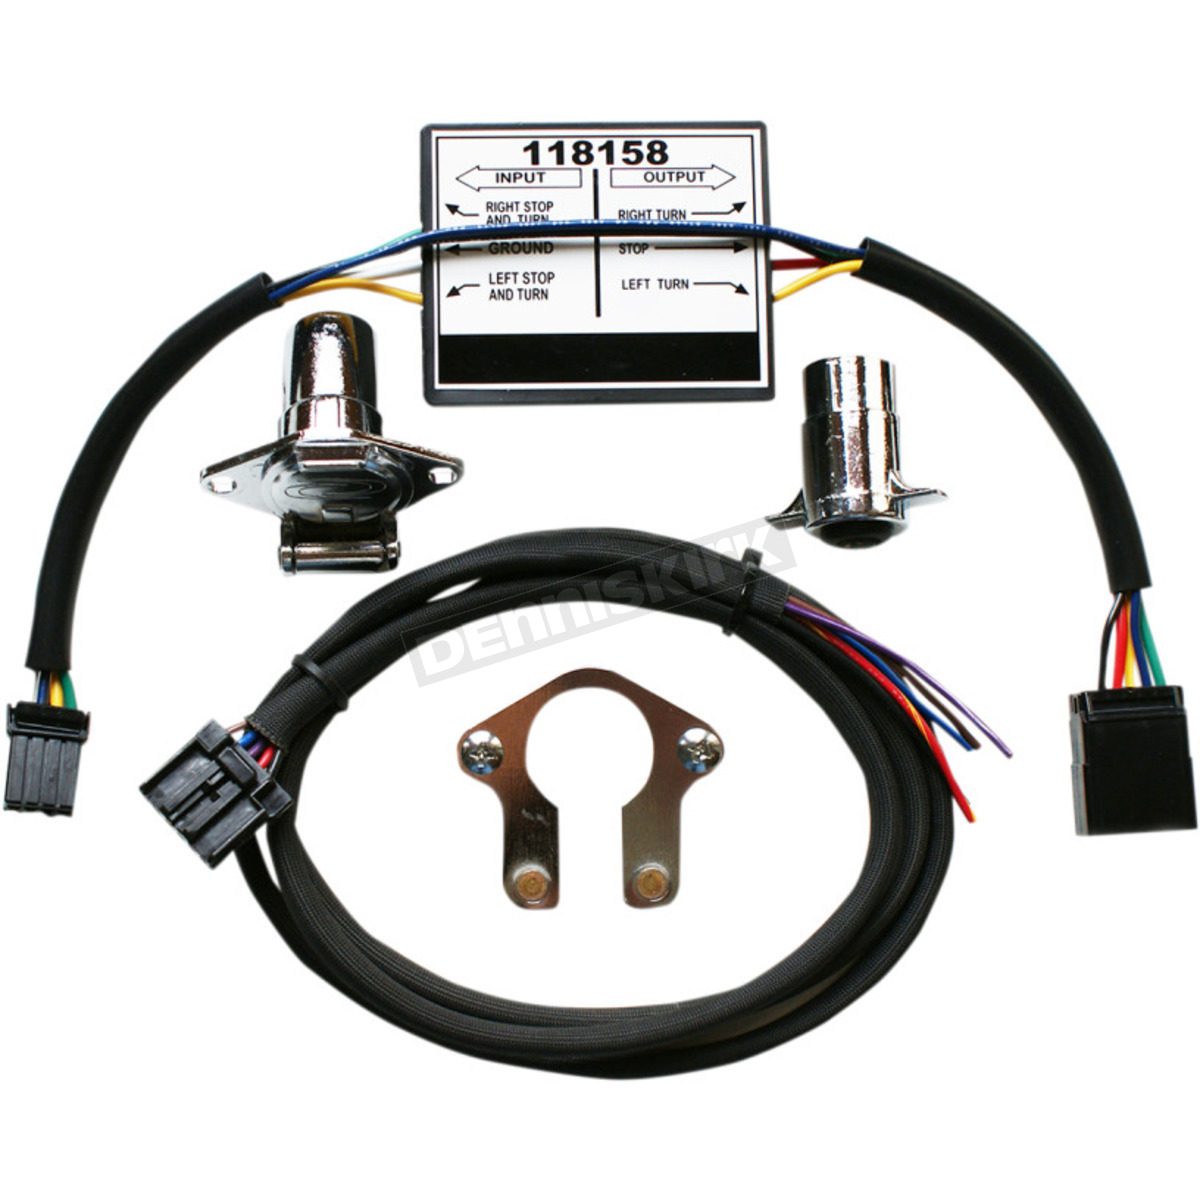 Khrome Werks Four to Five Wire Plug and Play Converter - 720753